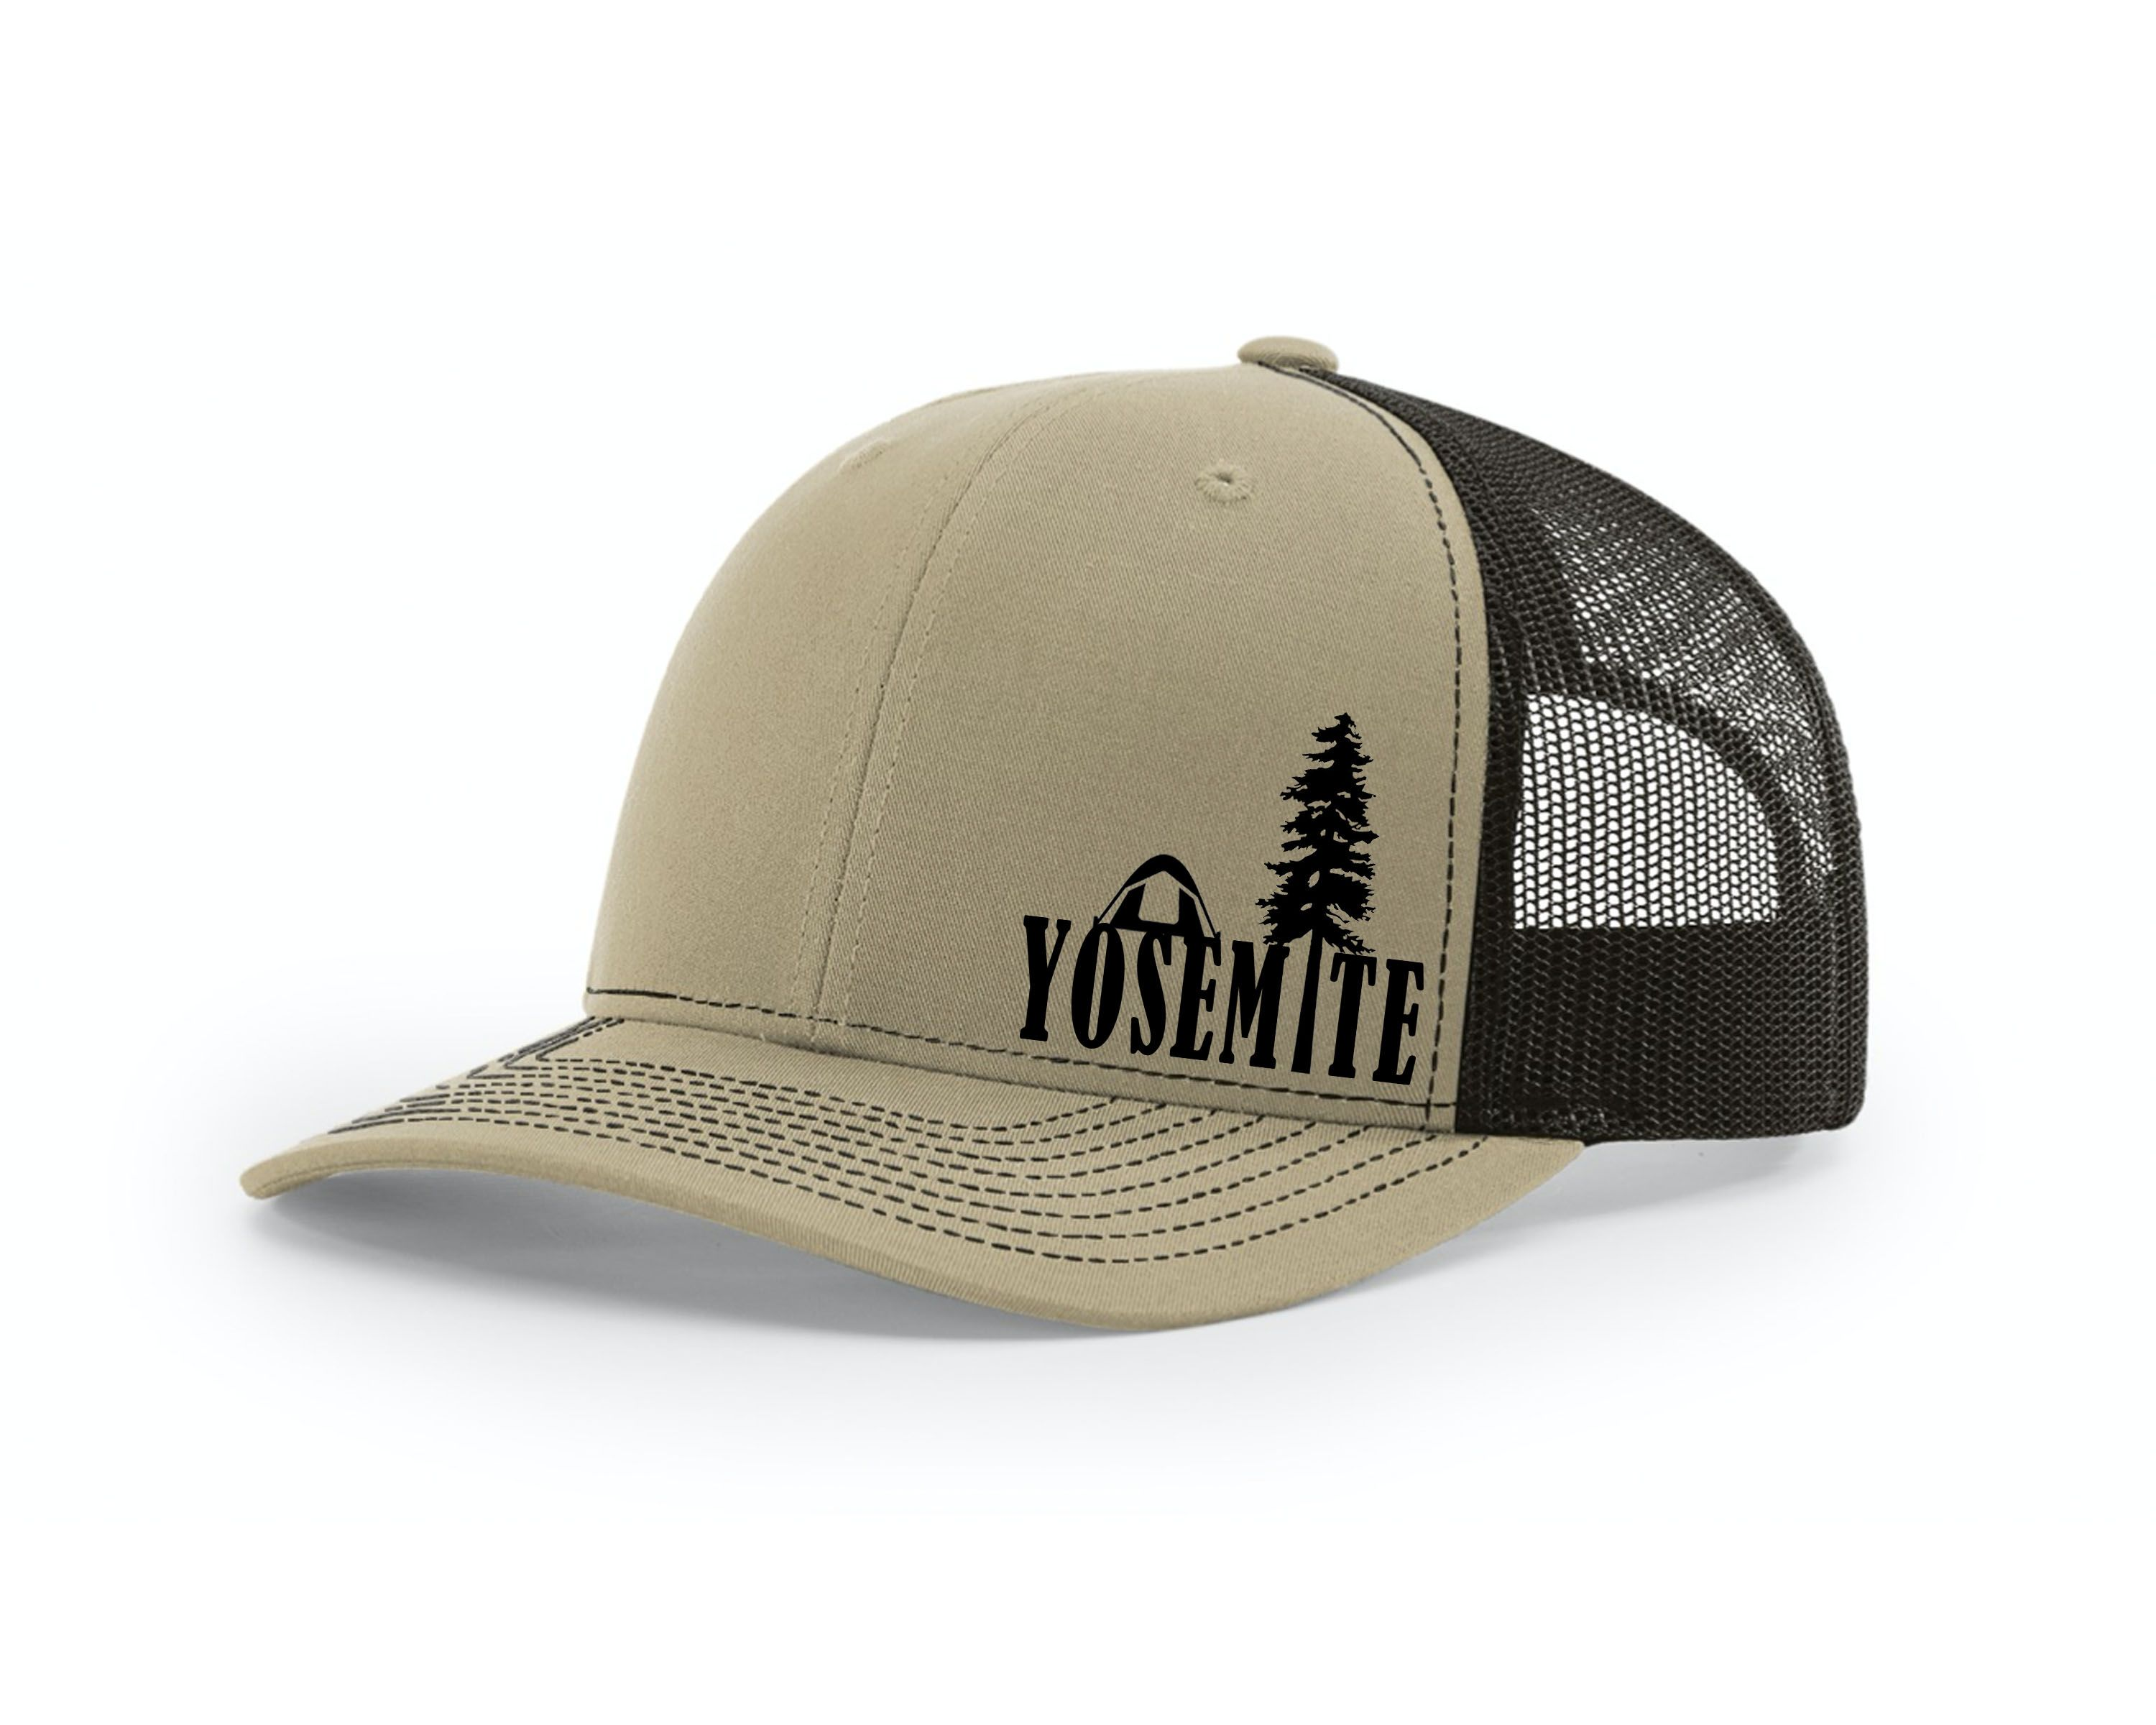 Bfvapparel On Etsy Hats For Men Unique Items Products Trucker Hat